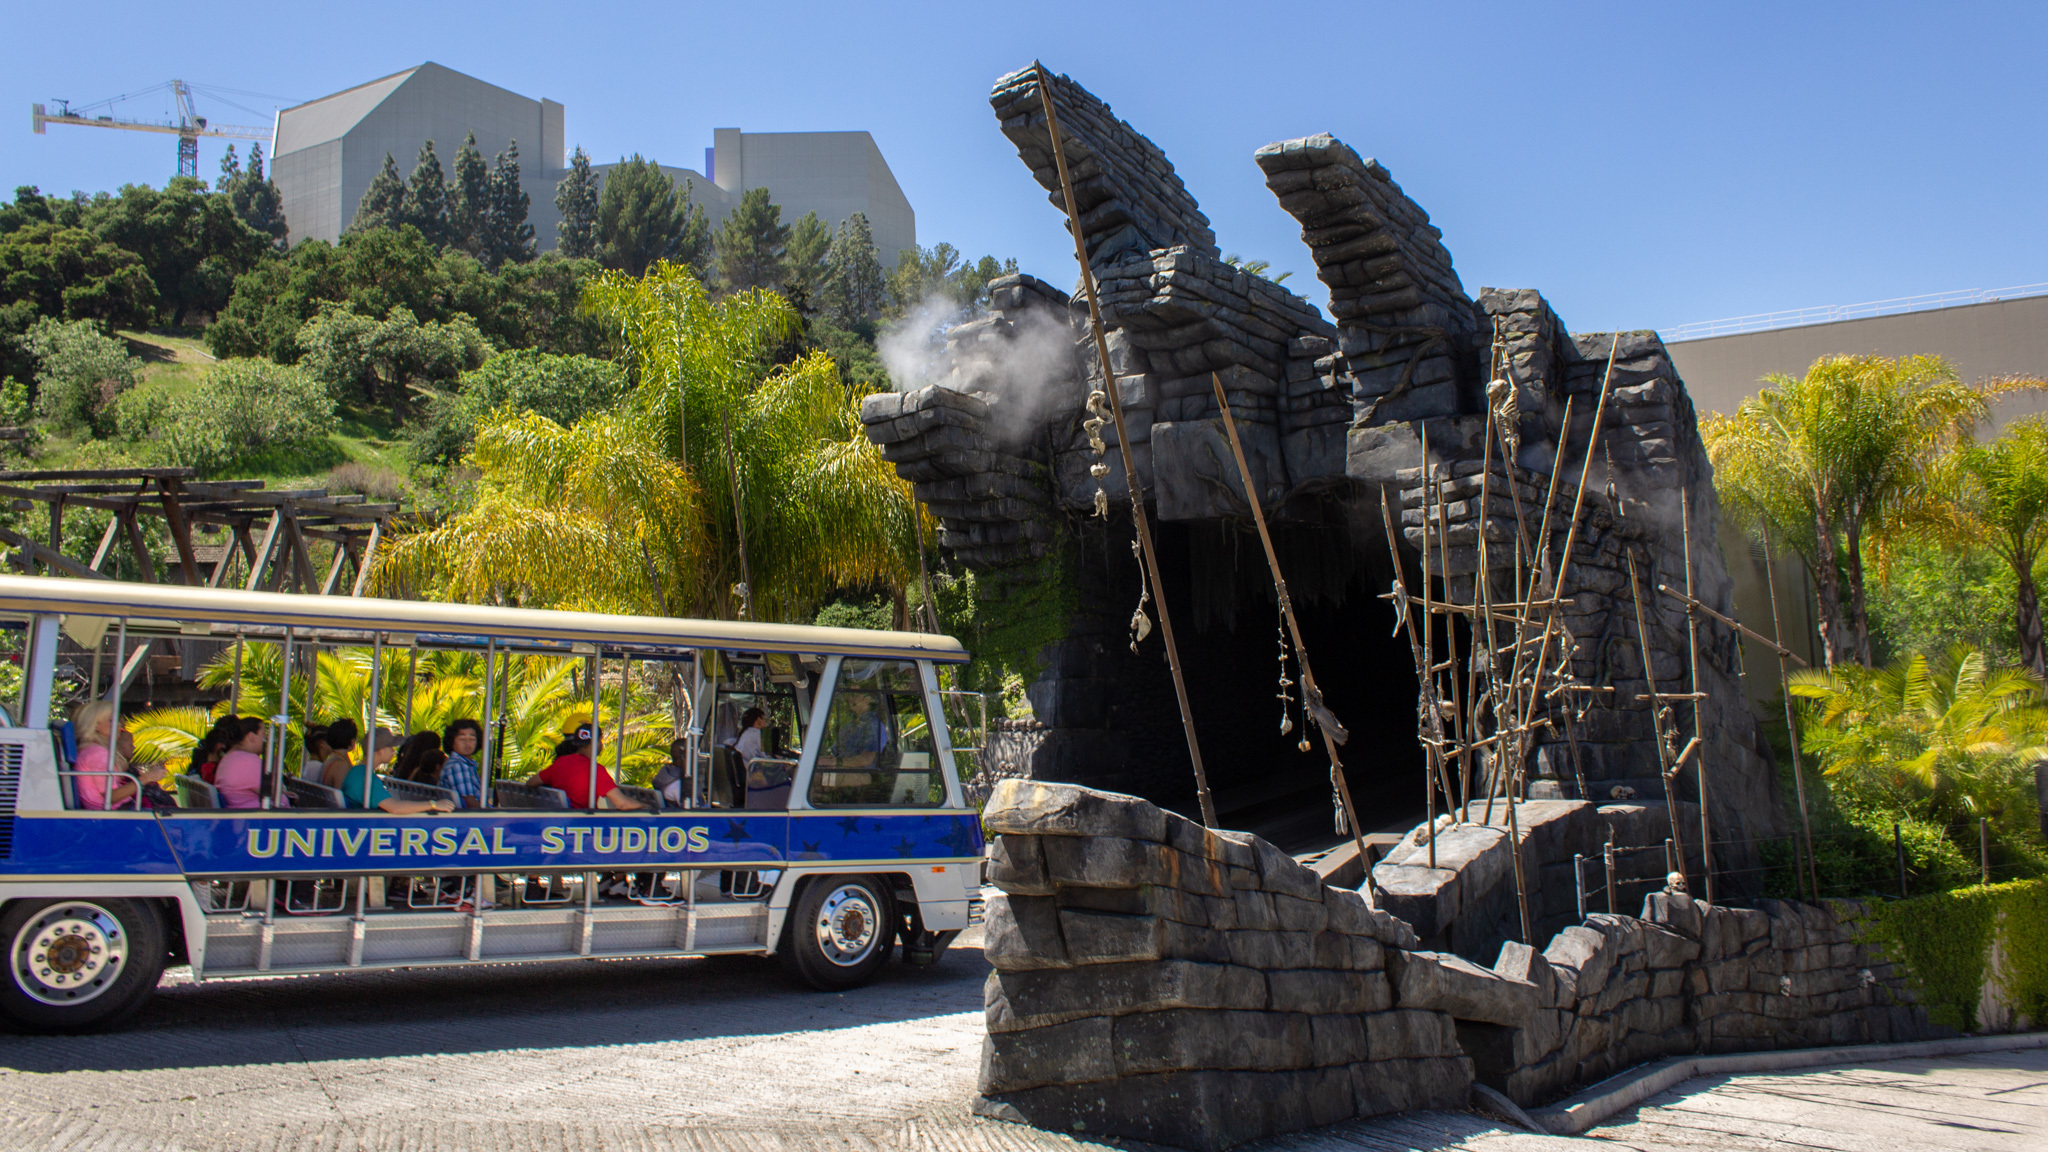 Studio Tours In Los Angeles Including Warner Bros And Universal Studios